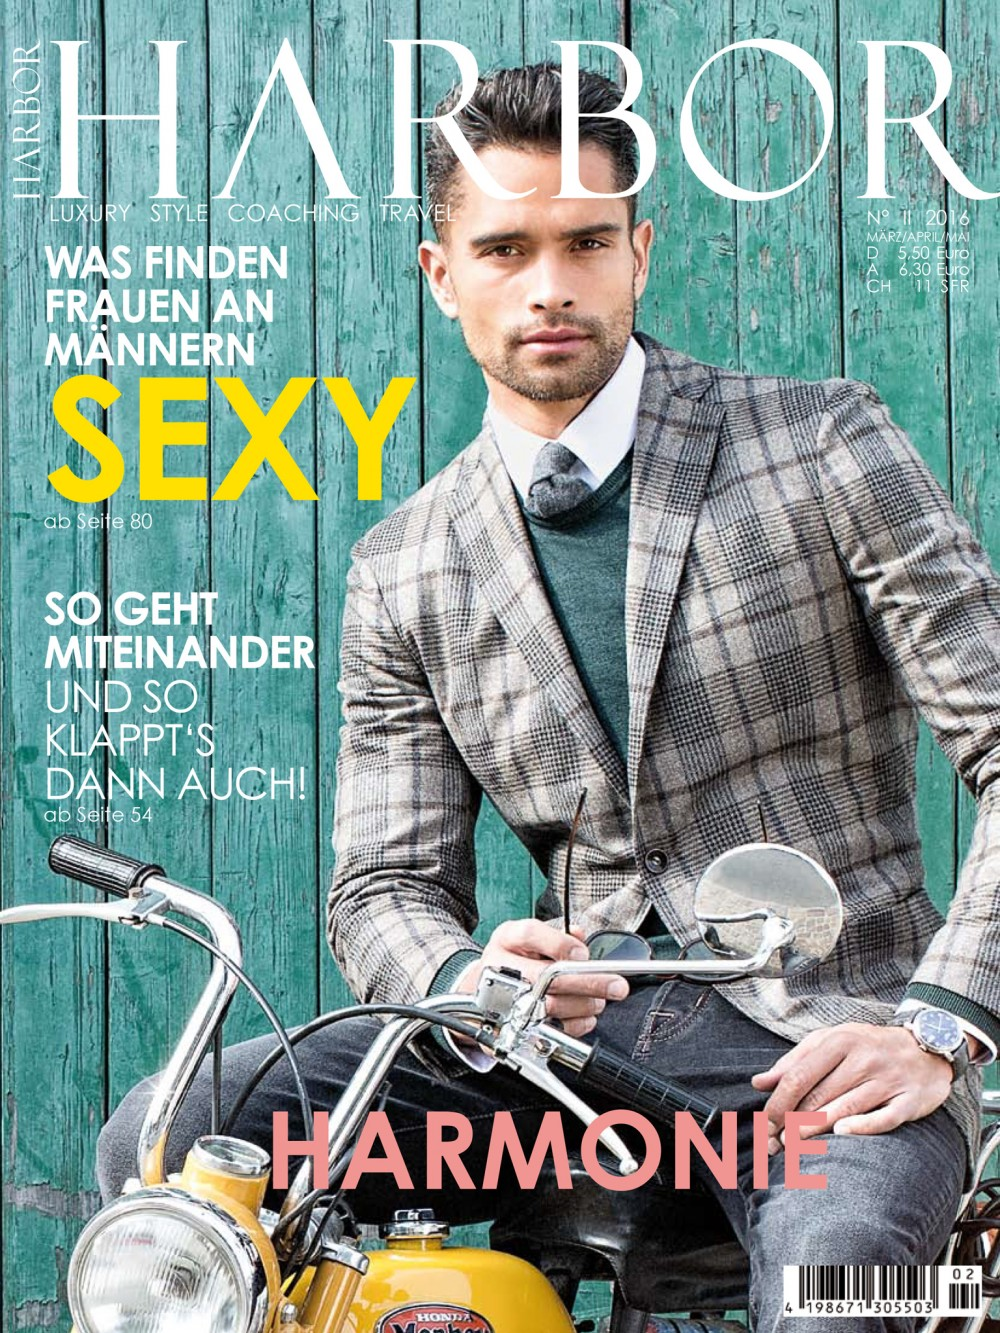 22HARBOR_magazine_cover_frontpage_Michael_Gueth_Photography_Jan_Wischermann_Retouching_2016